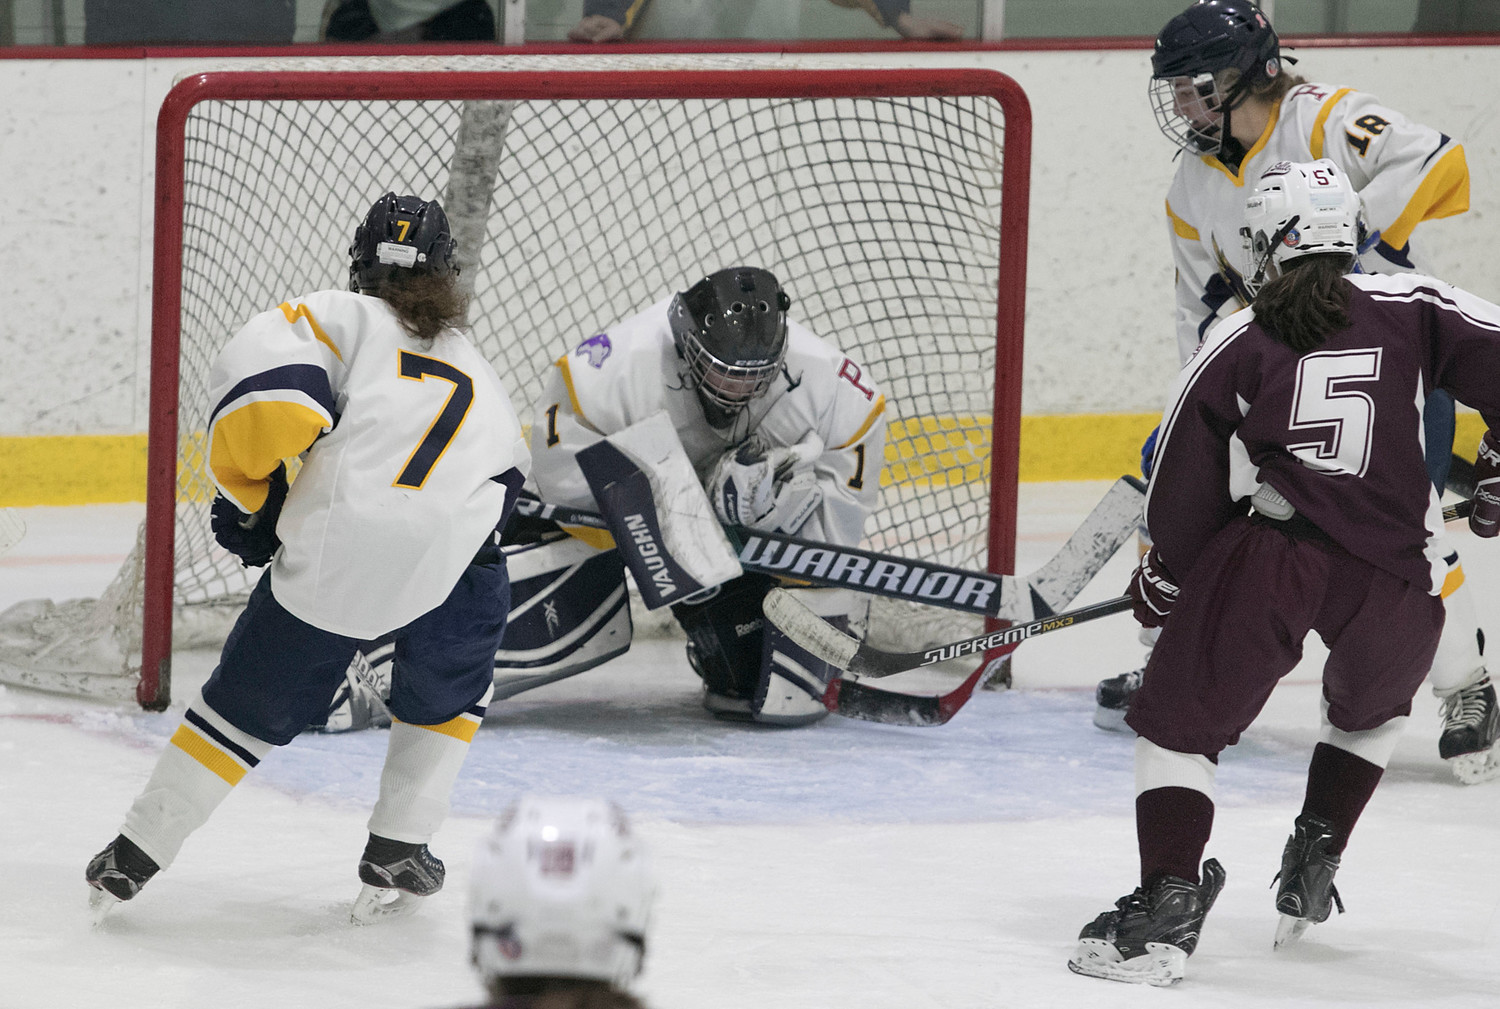 Eagles goaltender Ellee Kopecky makes a save as she's framed by senior forward Sydney Parkhurst (left) and defenseman Ella Hanley (right).